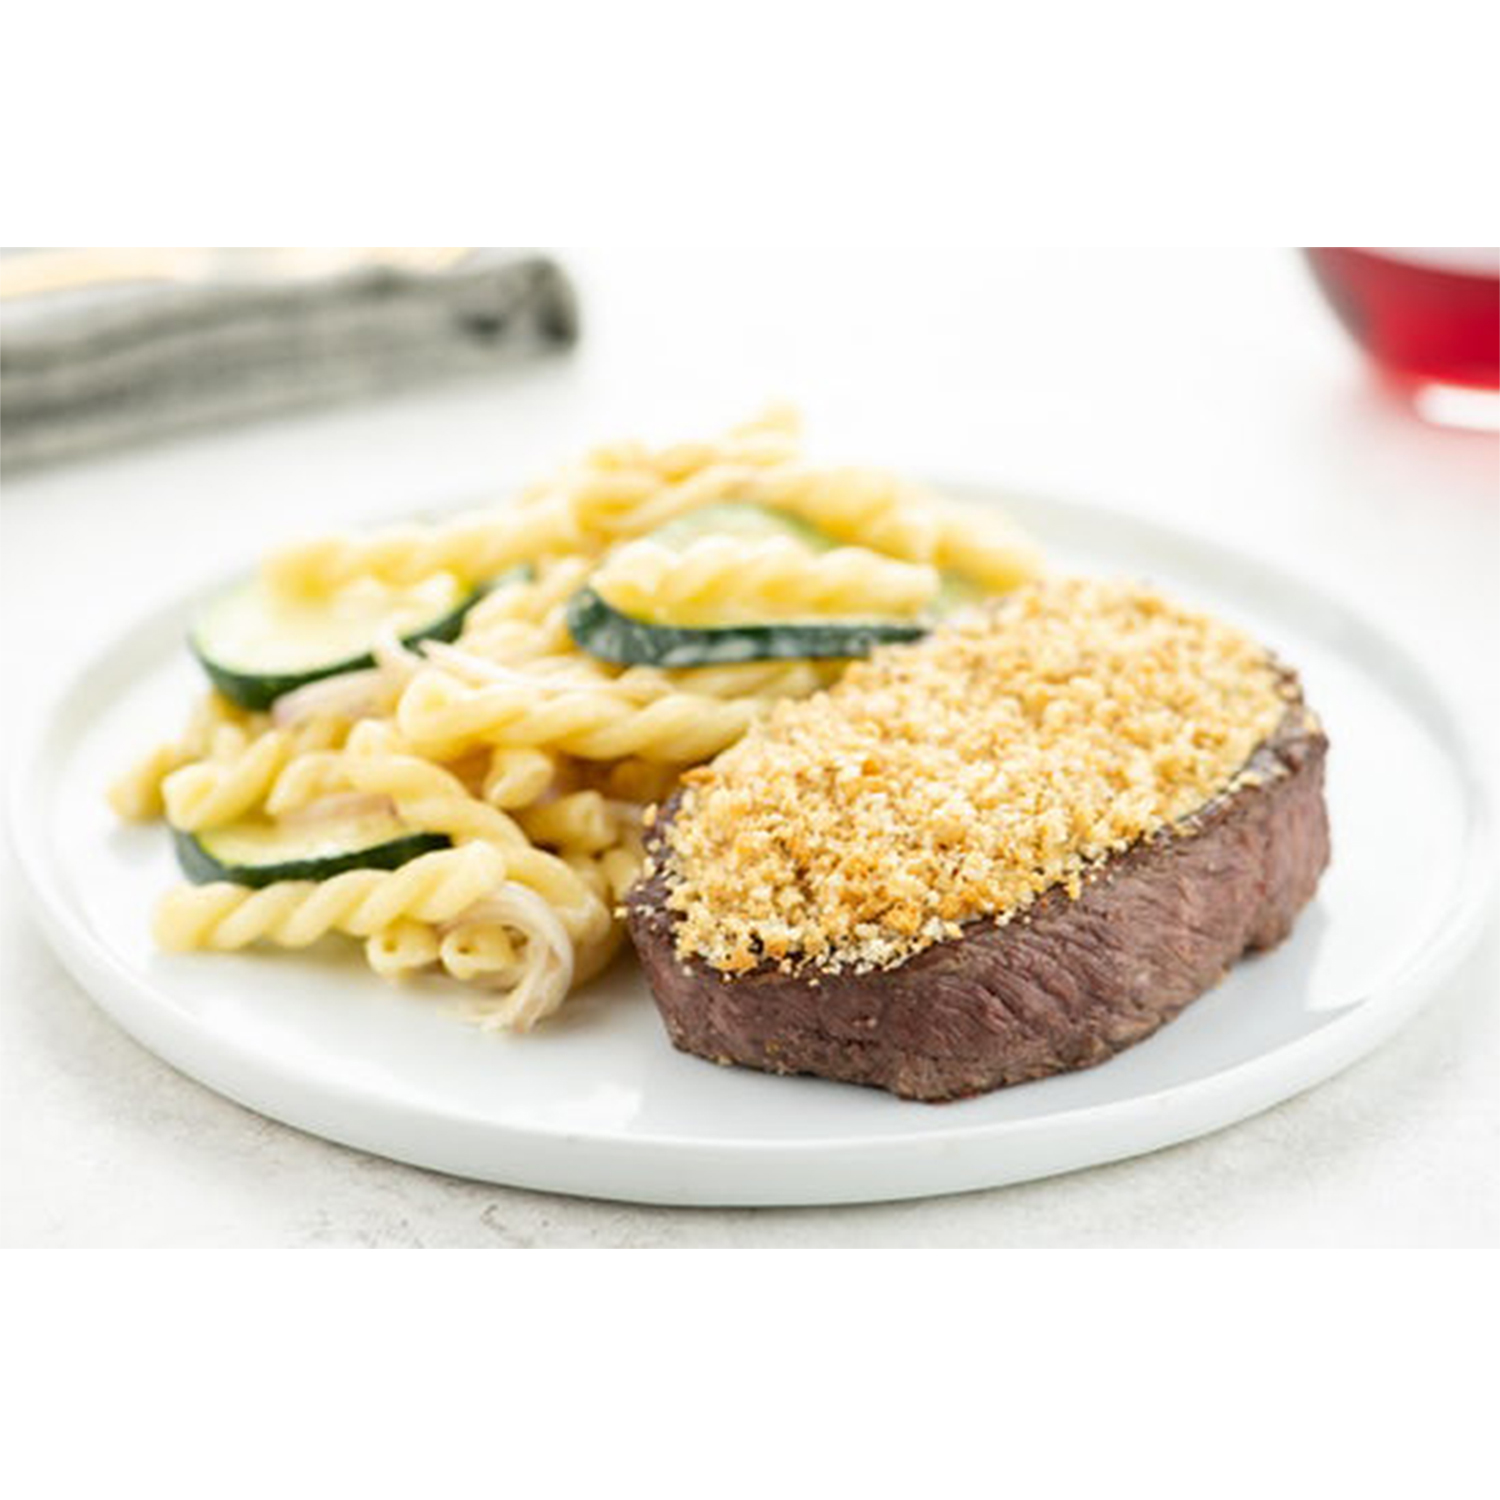 HomeChef Cooking Meal Kit